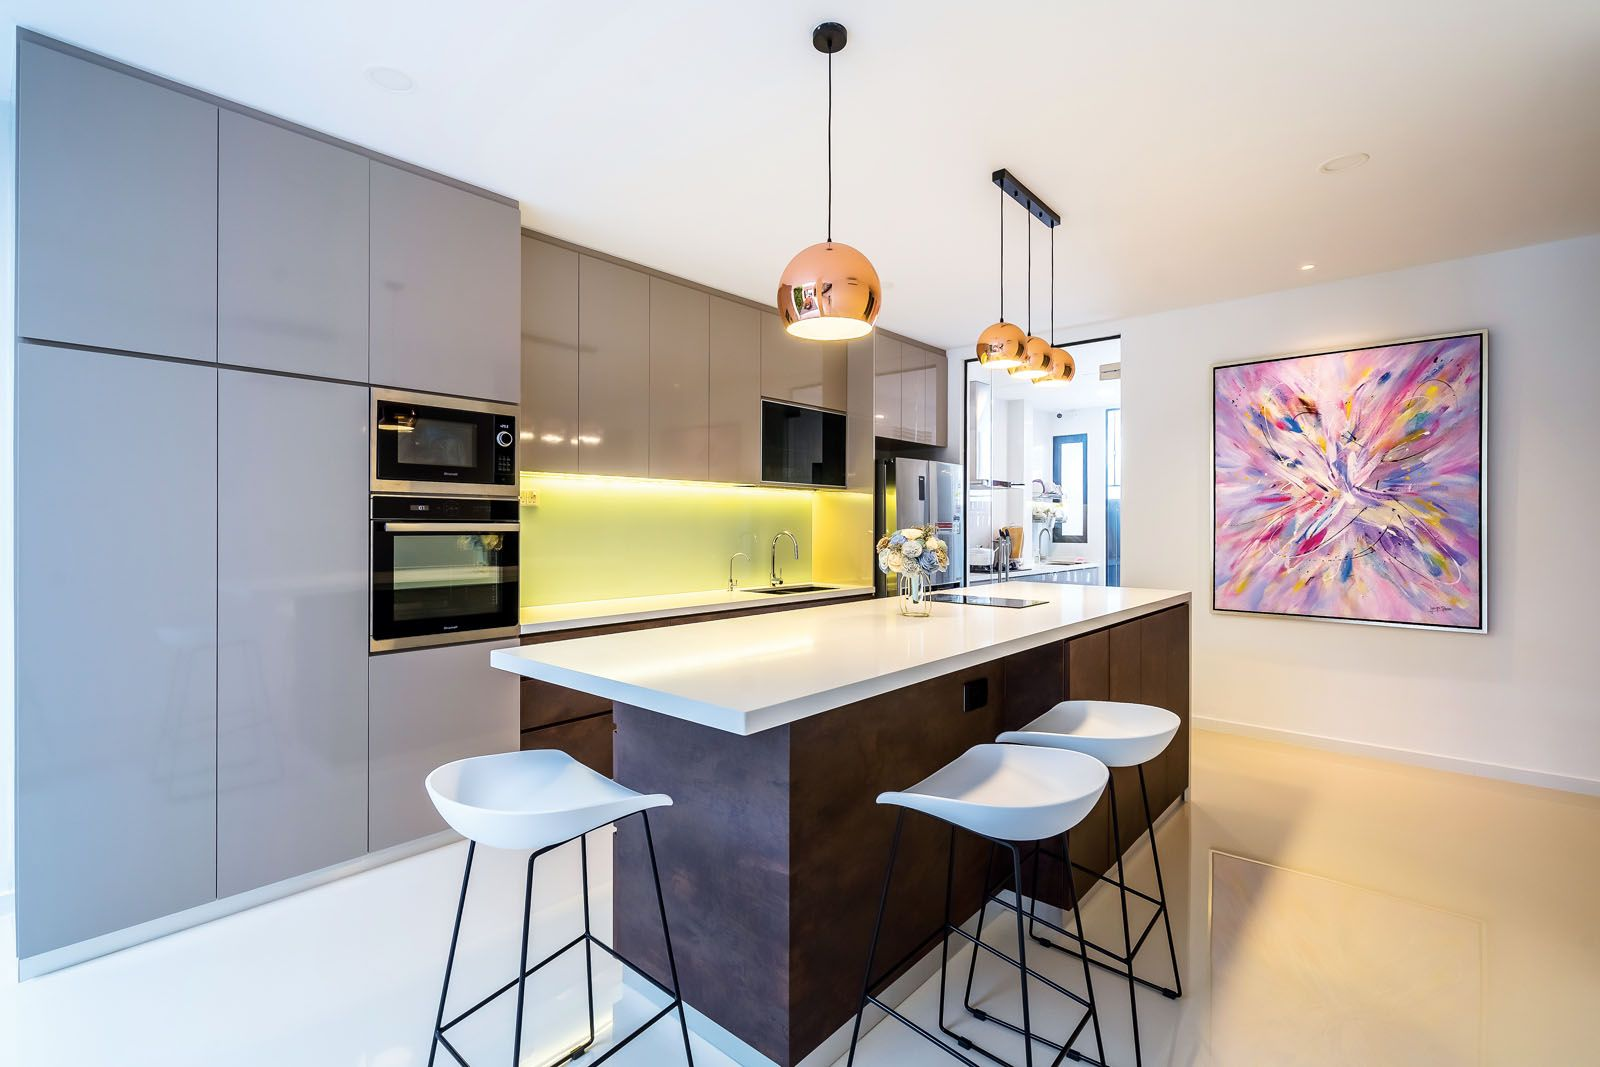 An abstract artwork is the focal point of the kitchen